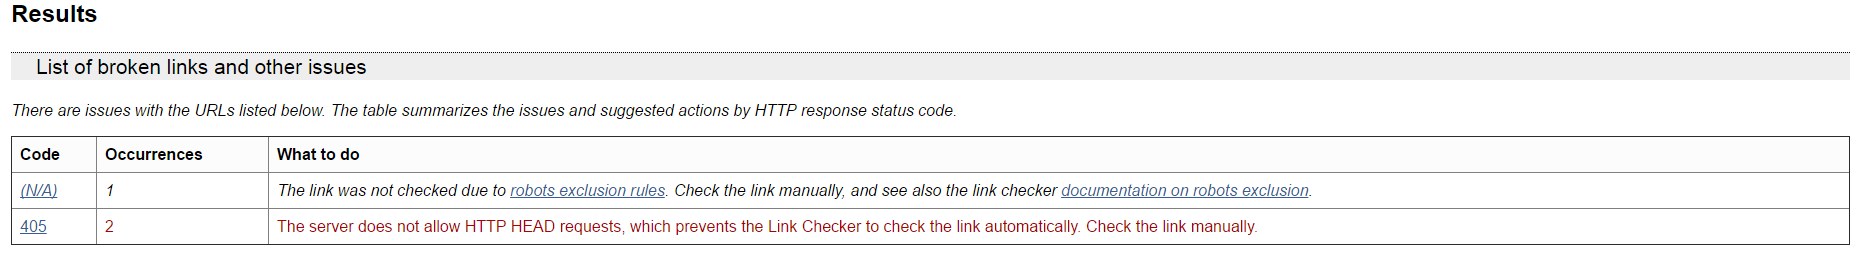 W3C Link Checker recommendations